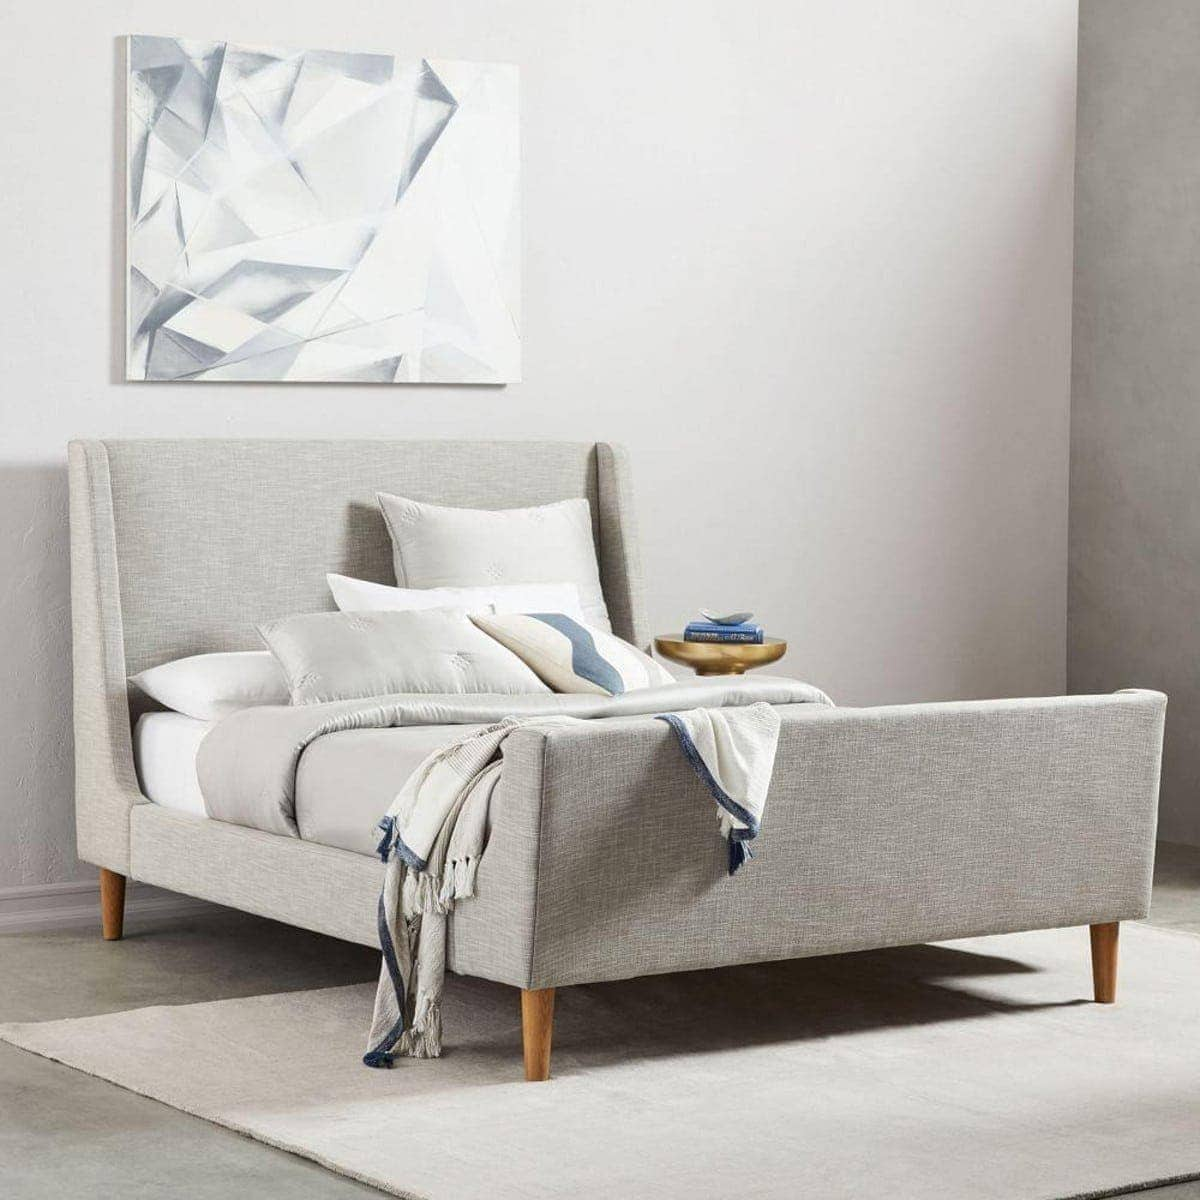 Where to Buy the Best in Upholstered Bedhead Designs Online